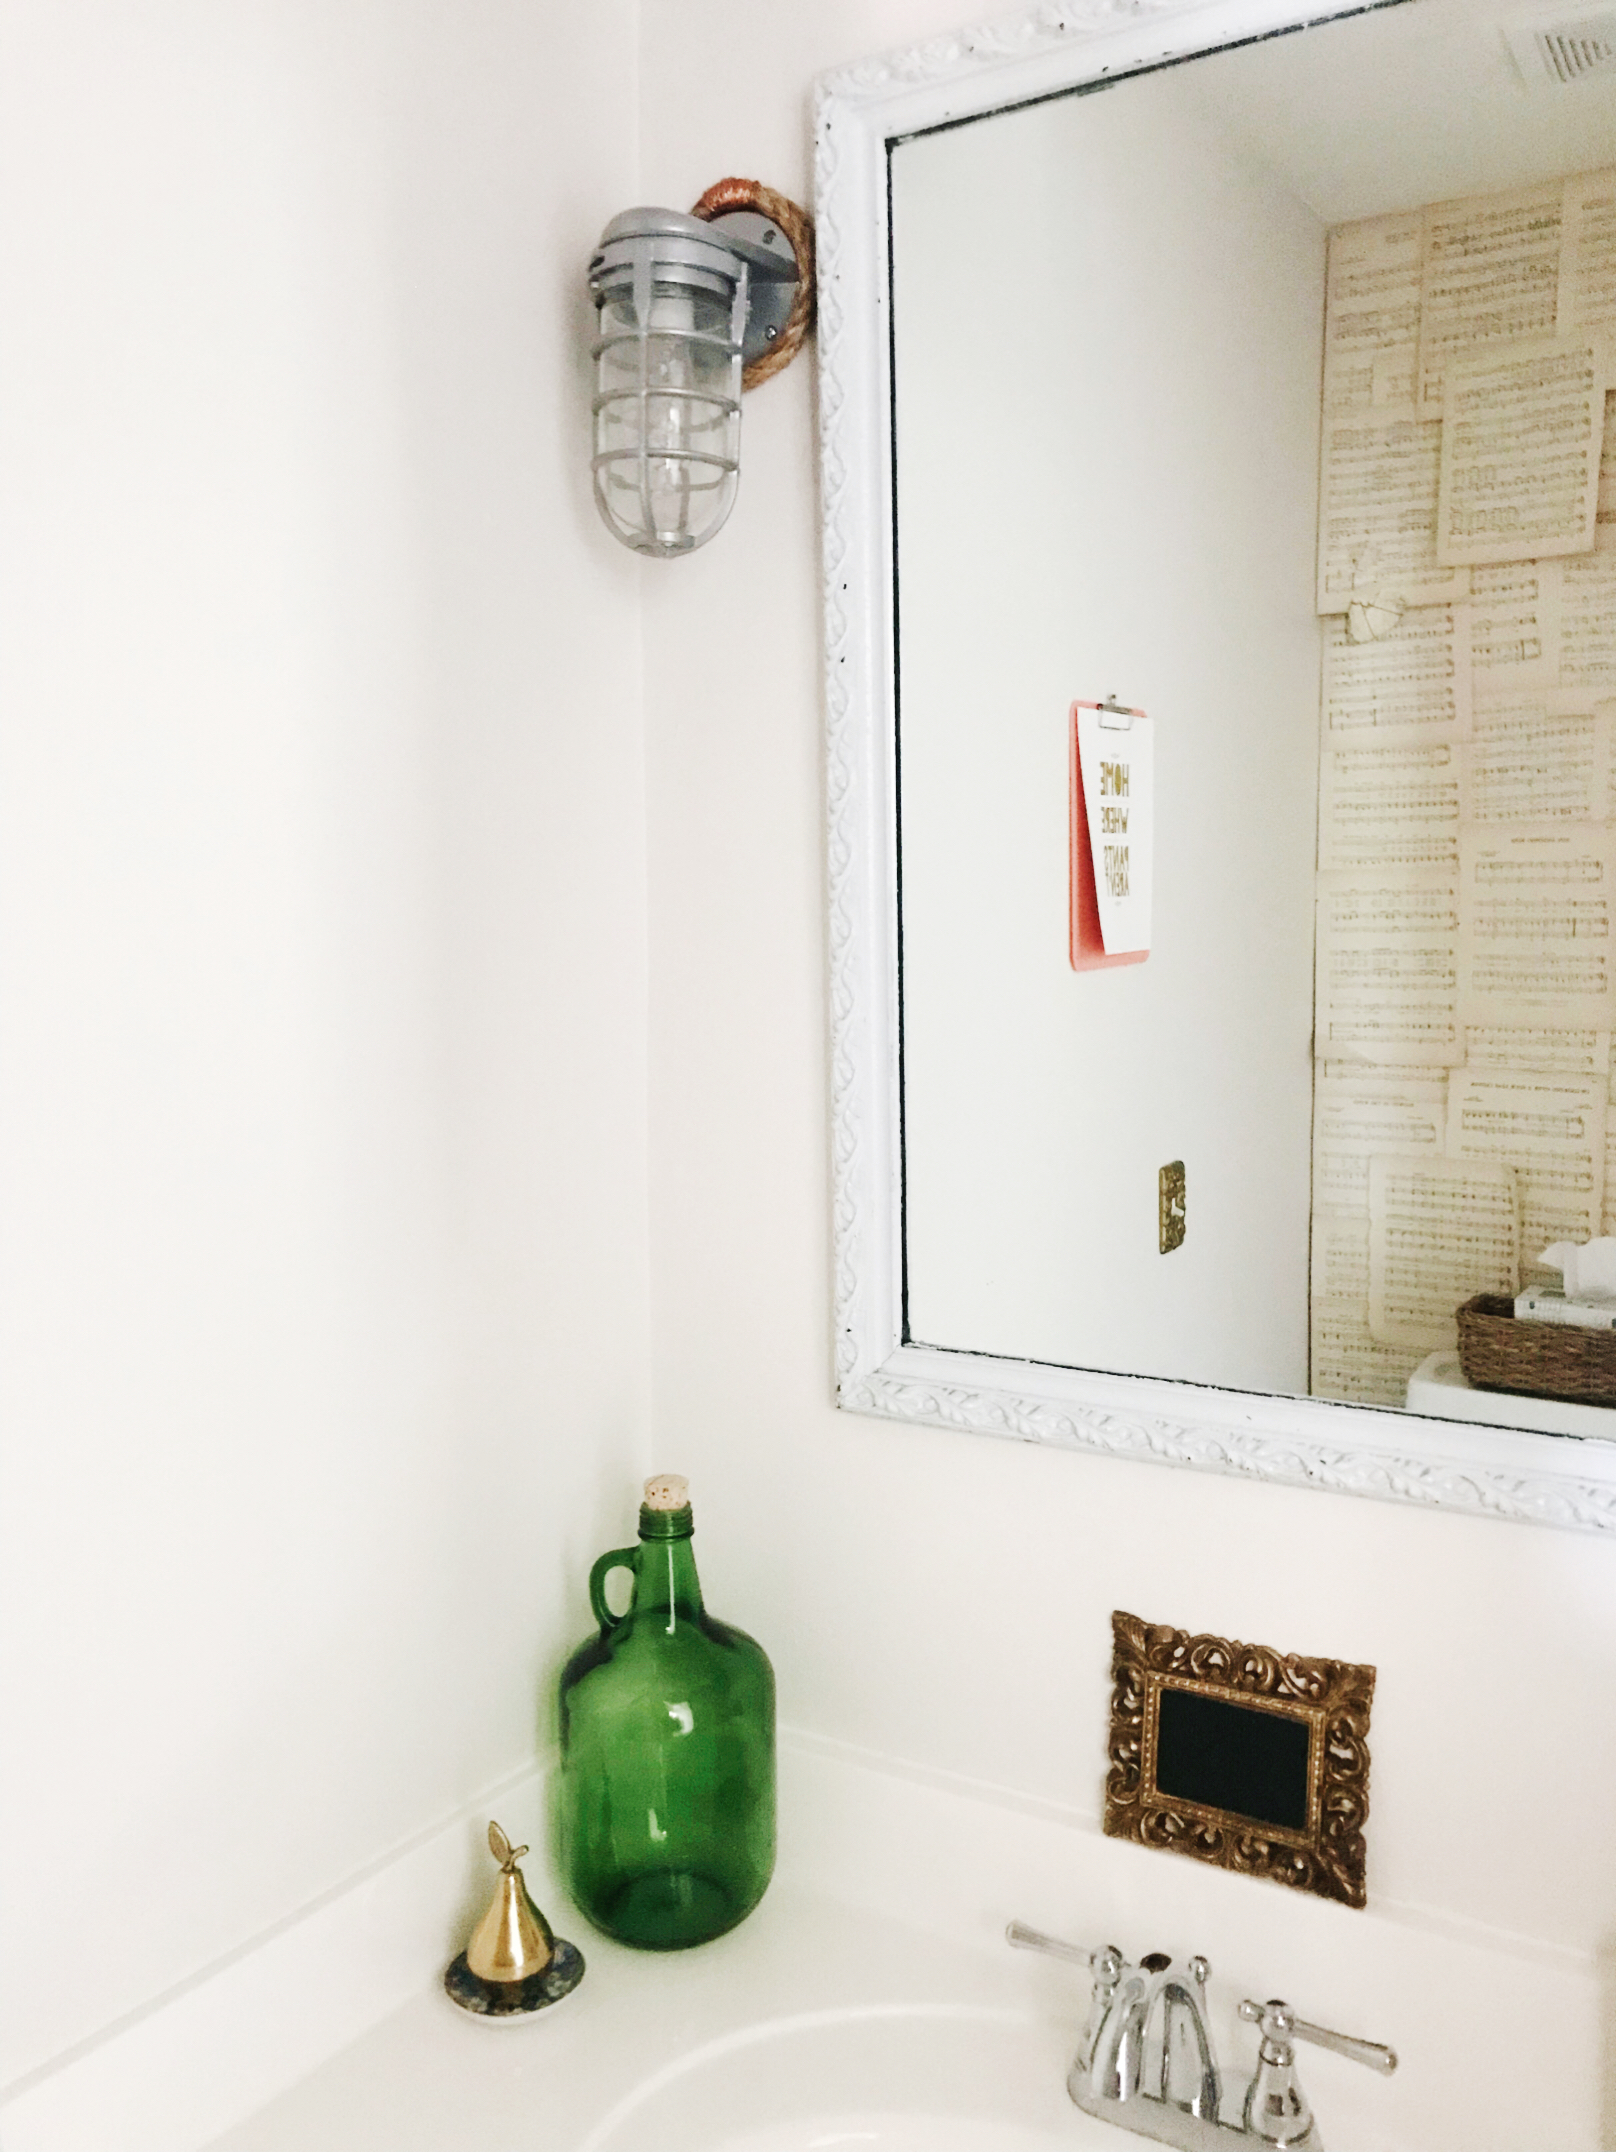 Best Basket for Back of Toilet from H.Prall & Co. | hprallandco.com